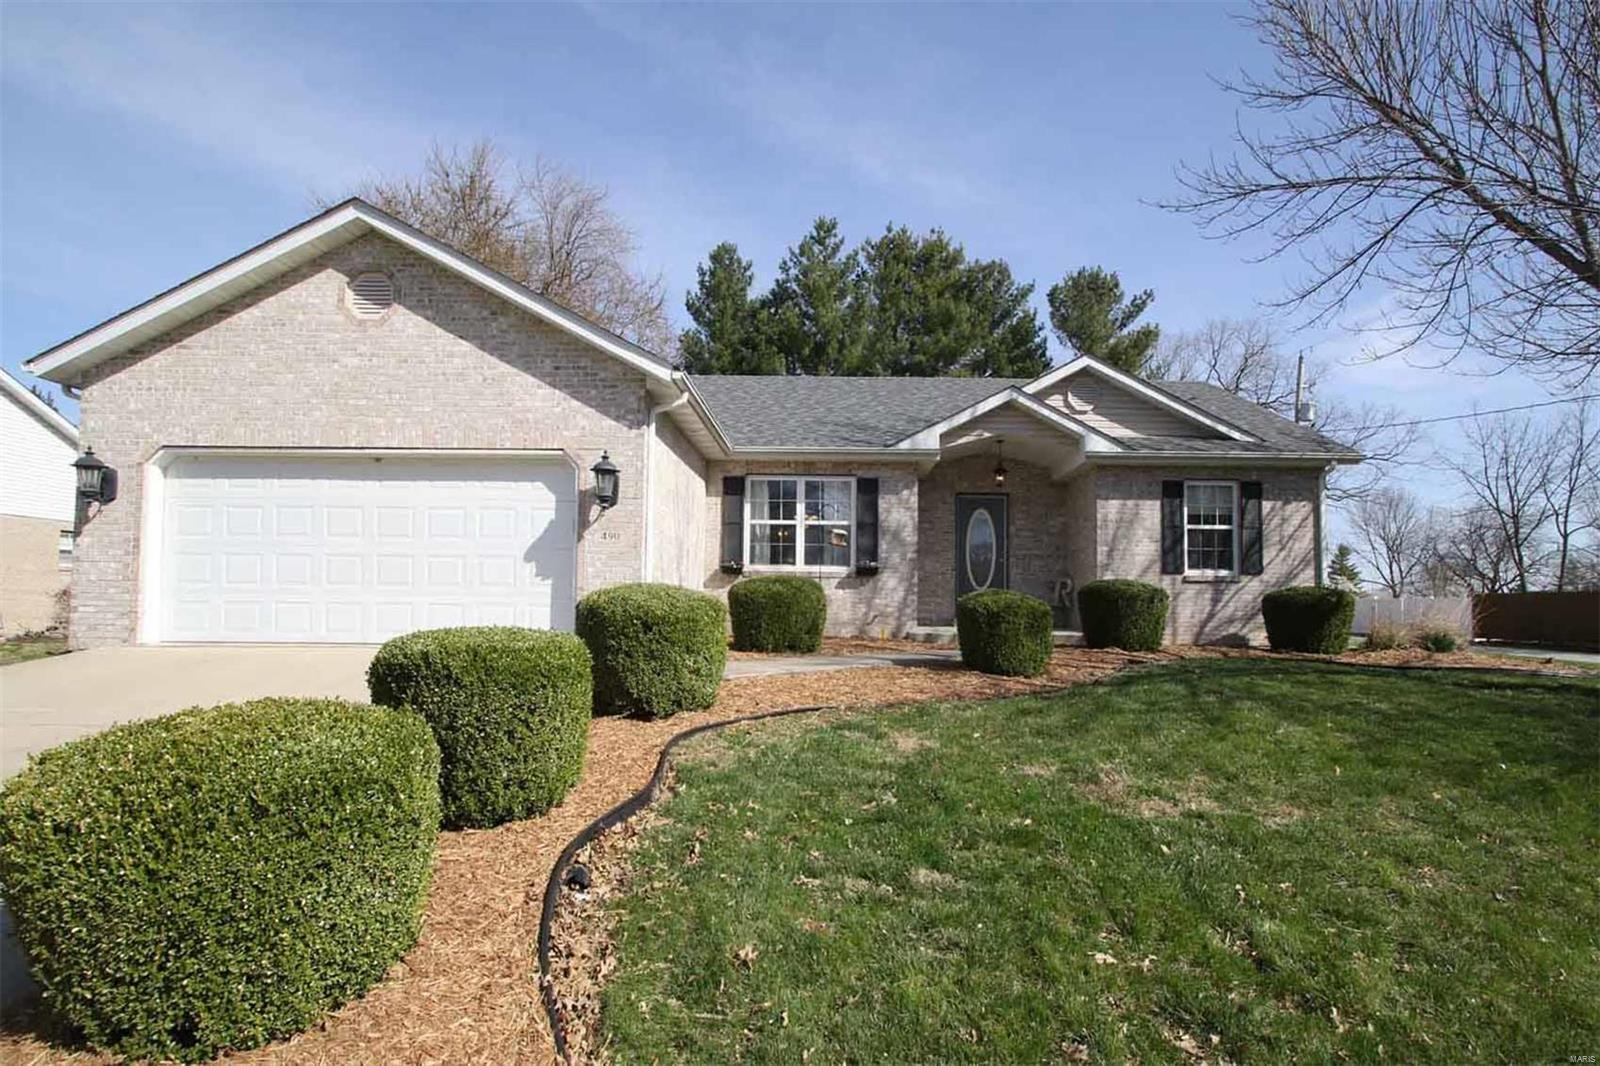 490 Sunset West Property Photo - Marine, IL real estate listing